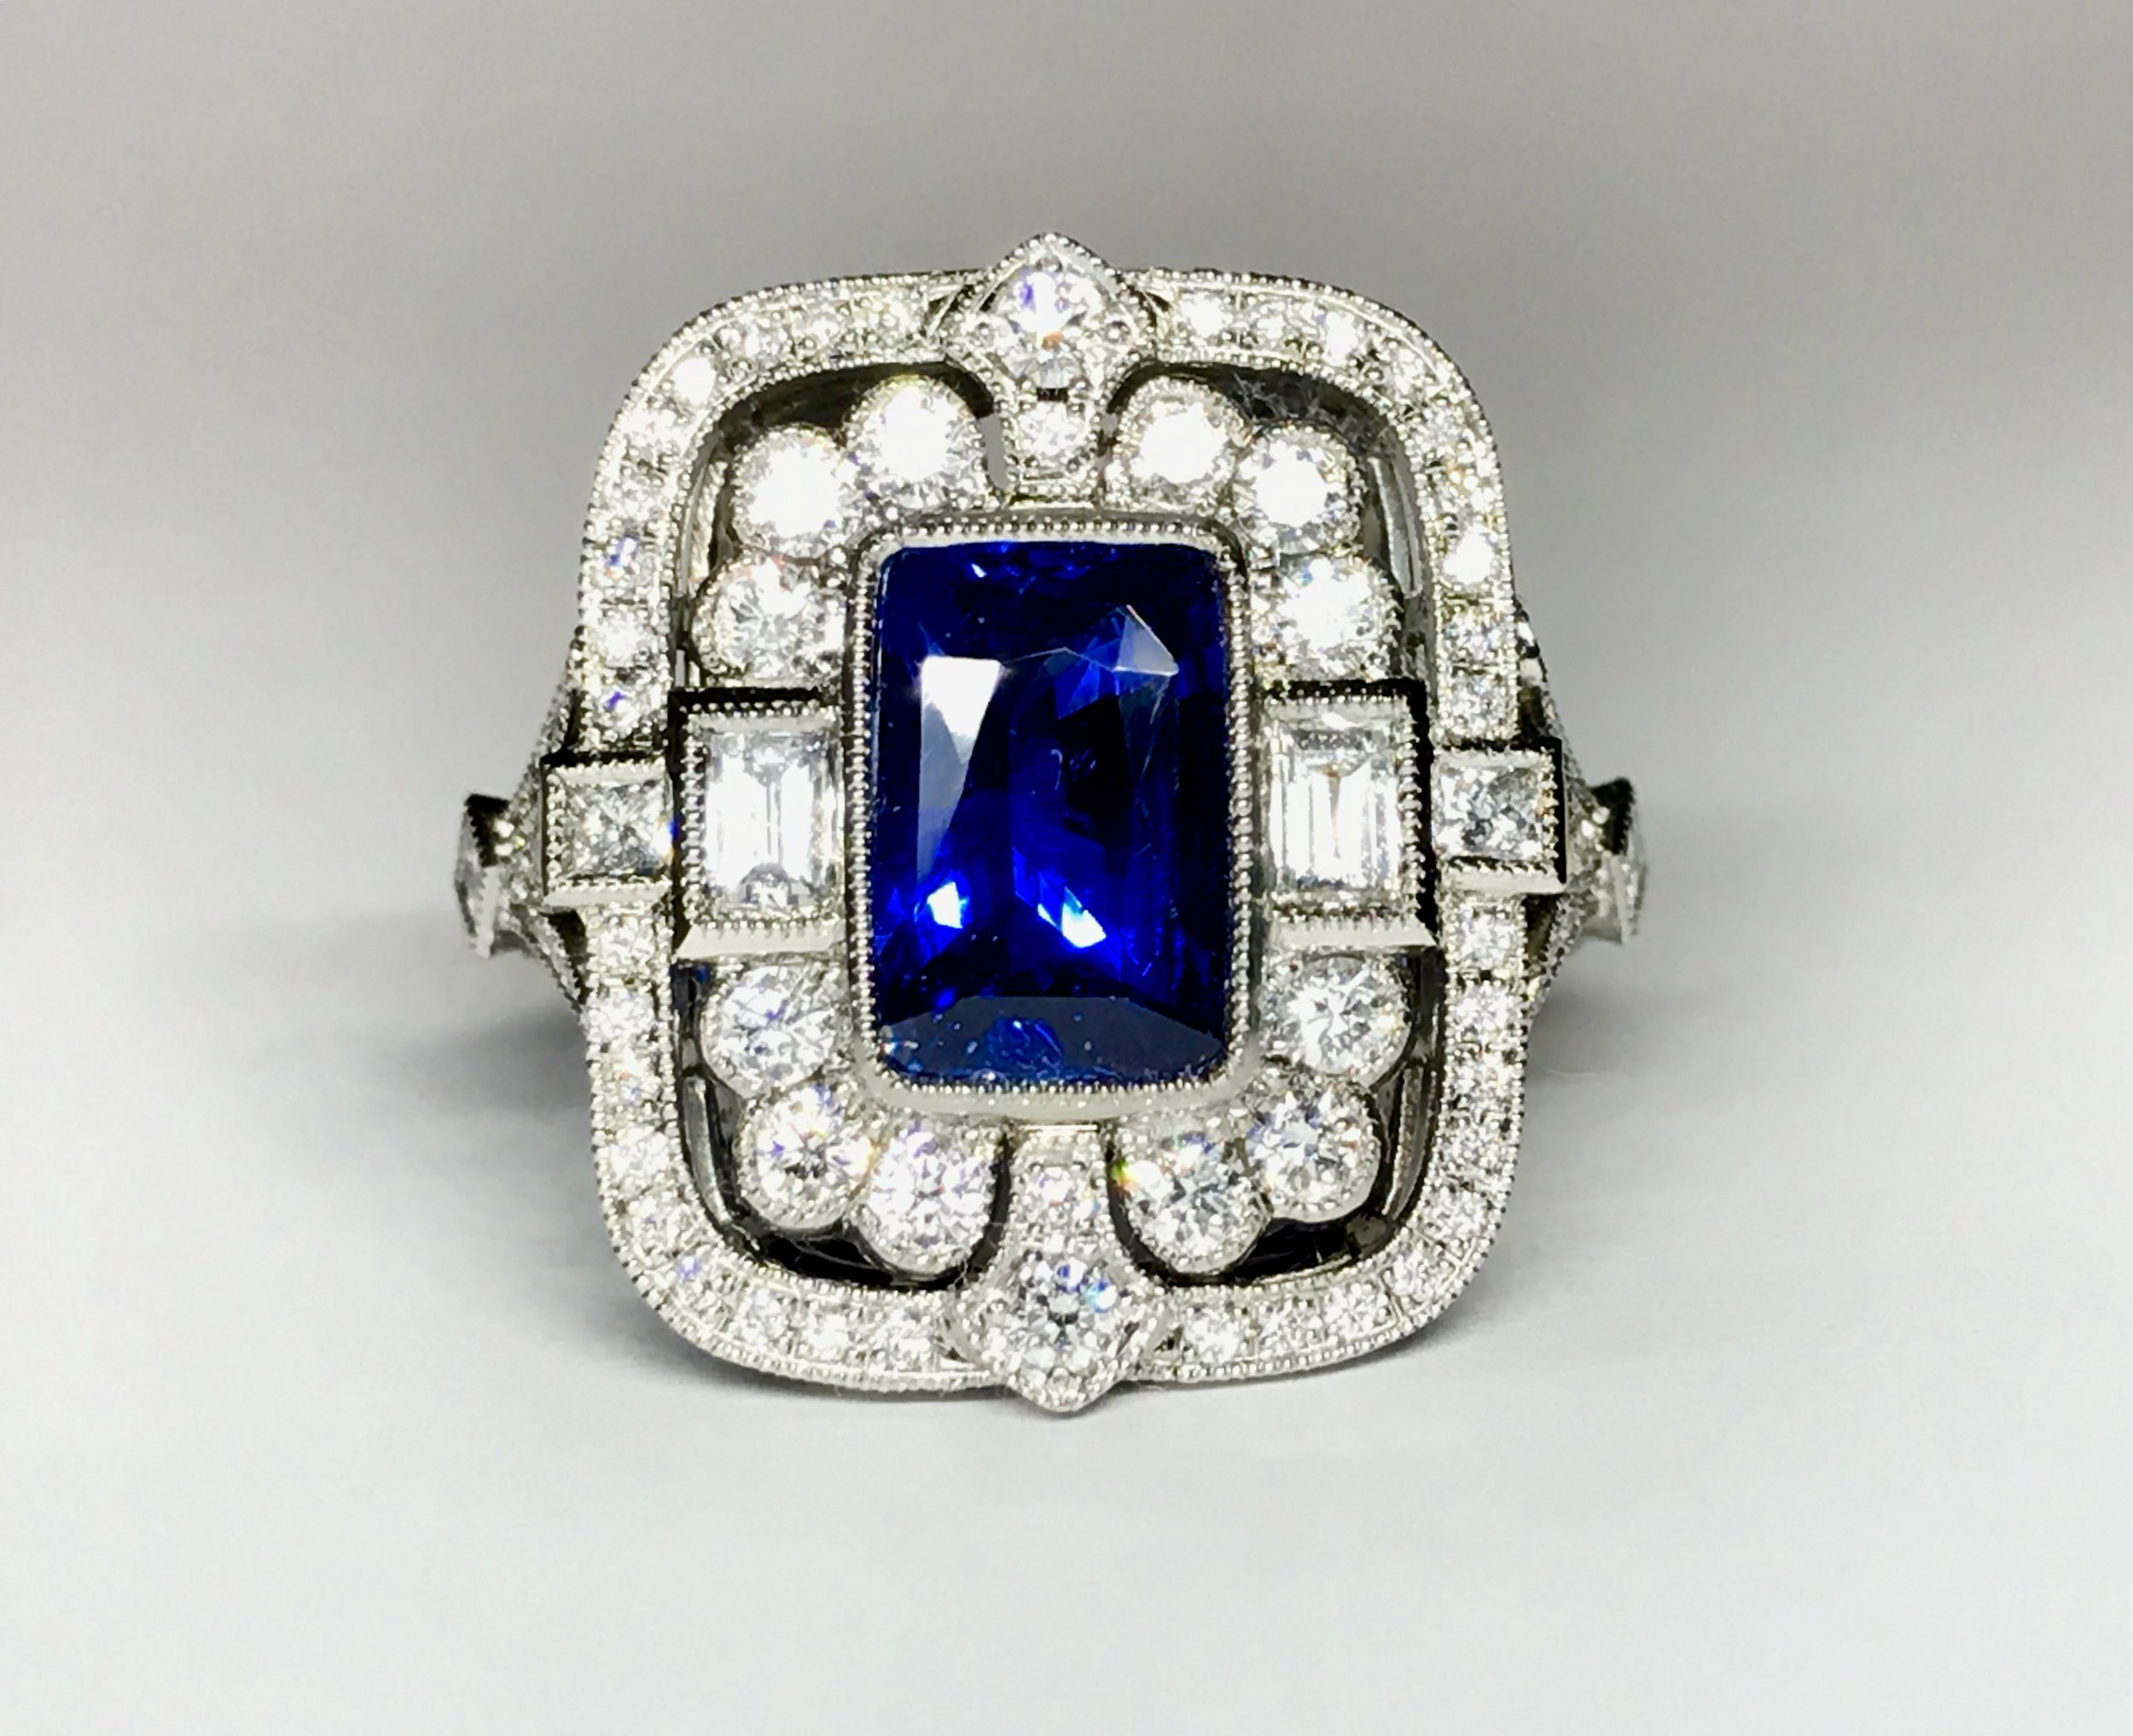 Beautiful 2.36ct oblong sapphire and diamond Edwardian style cluster ring. Made in Chichester, England.